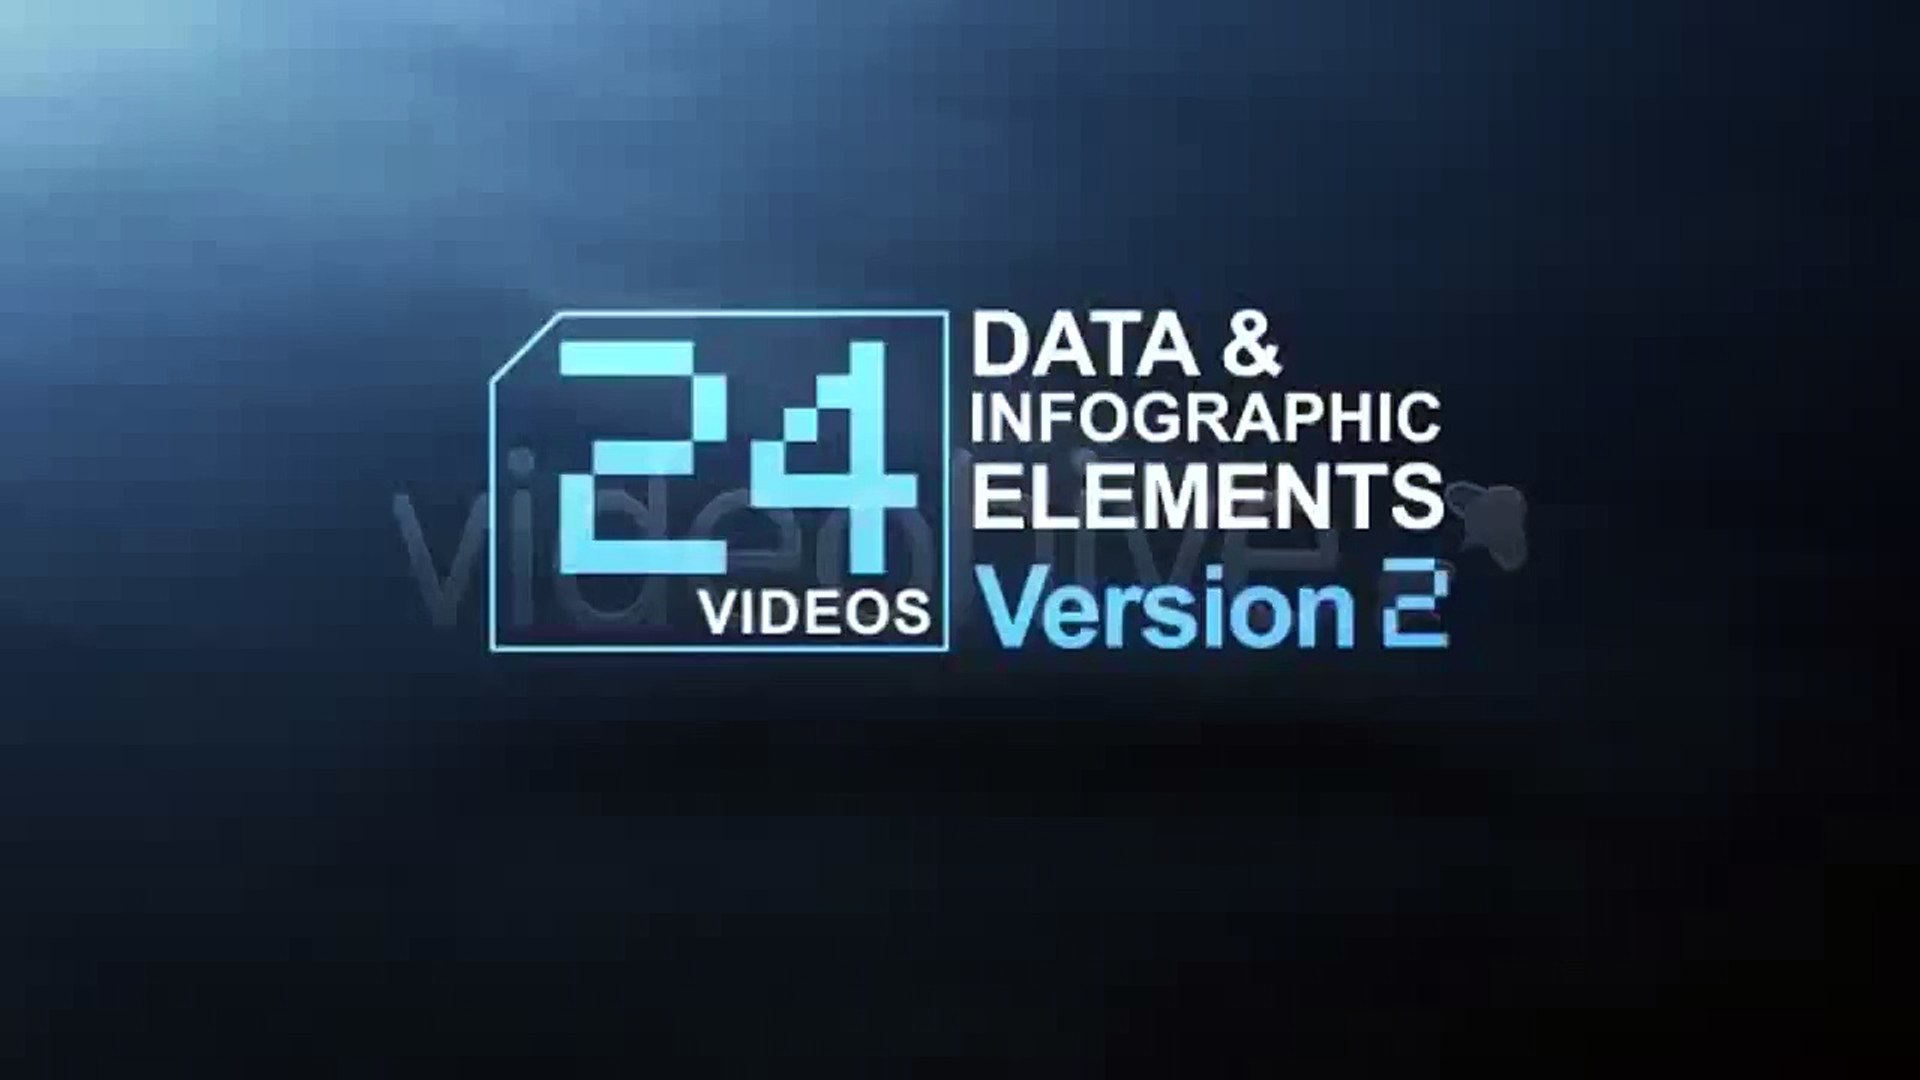 24 Videos Data & Infographic Elements V.2 | Motion Graphics | Files - Videohive